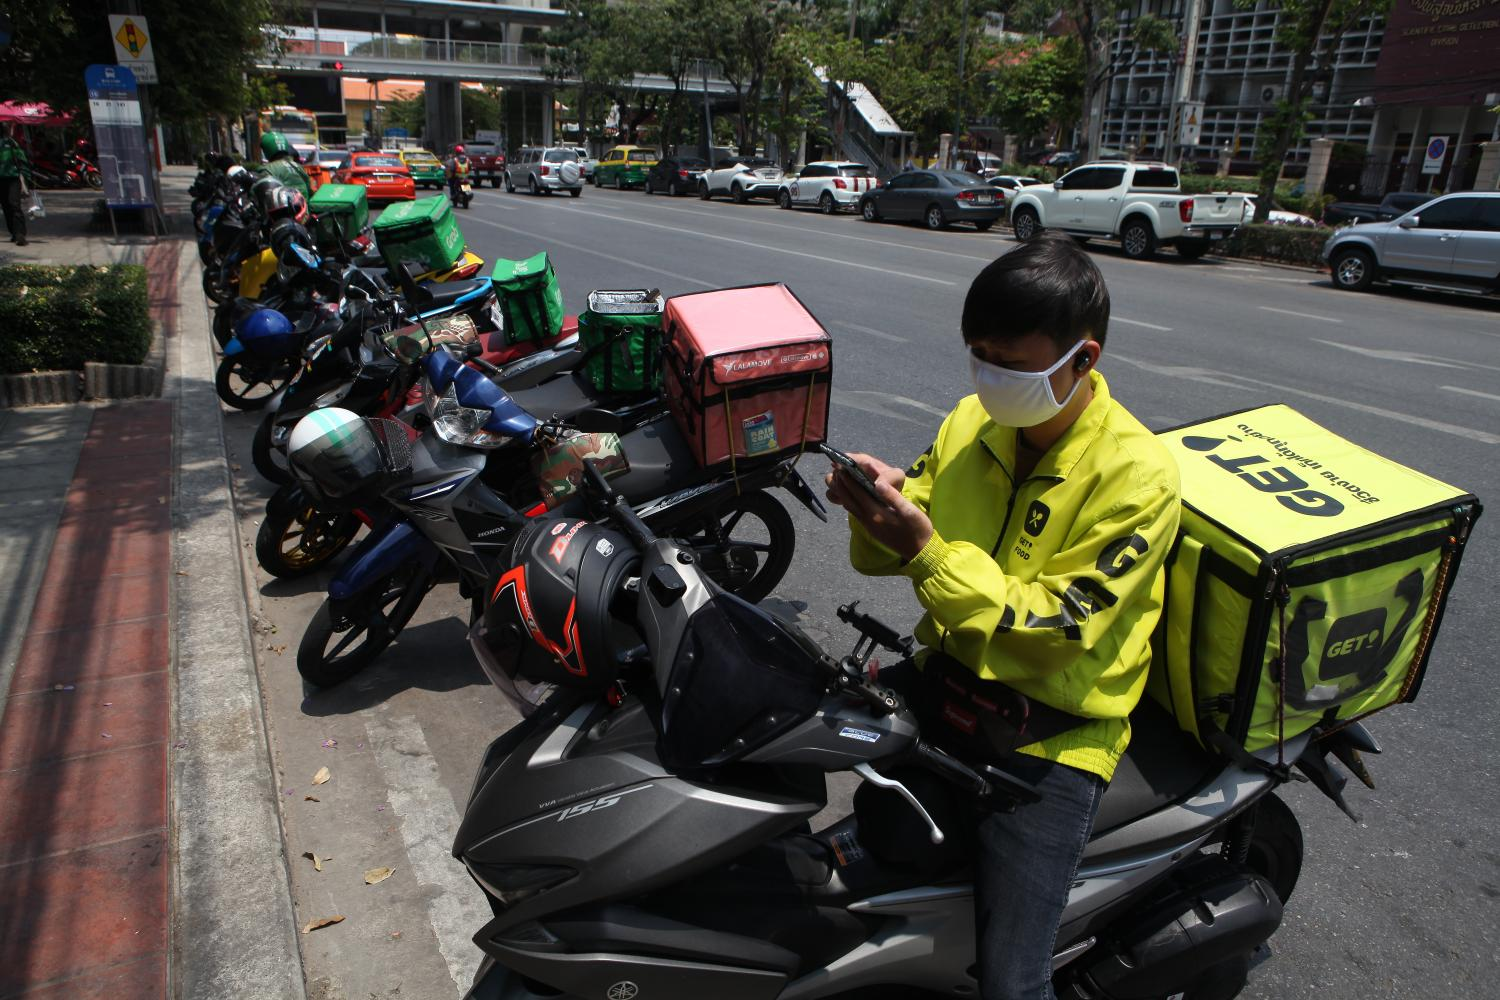 A delivery man calls his customer as he waits to pick up his order in the Siam Square area. Arnun Chonmahatrakool